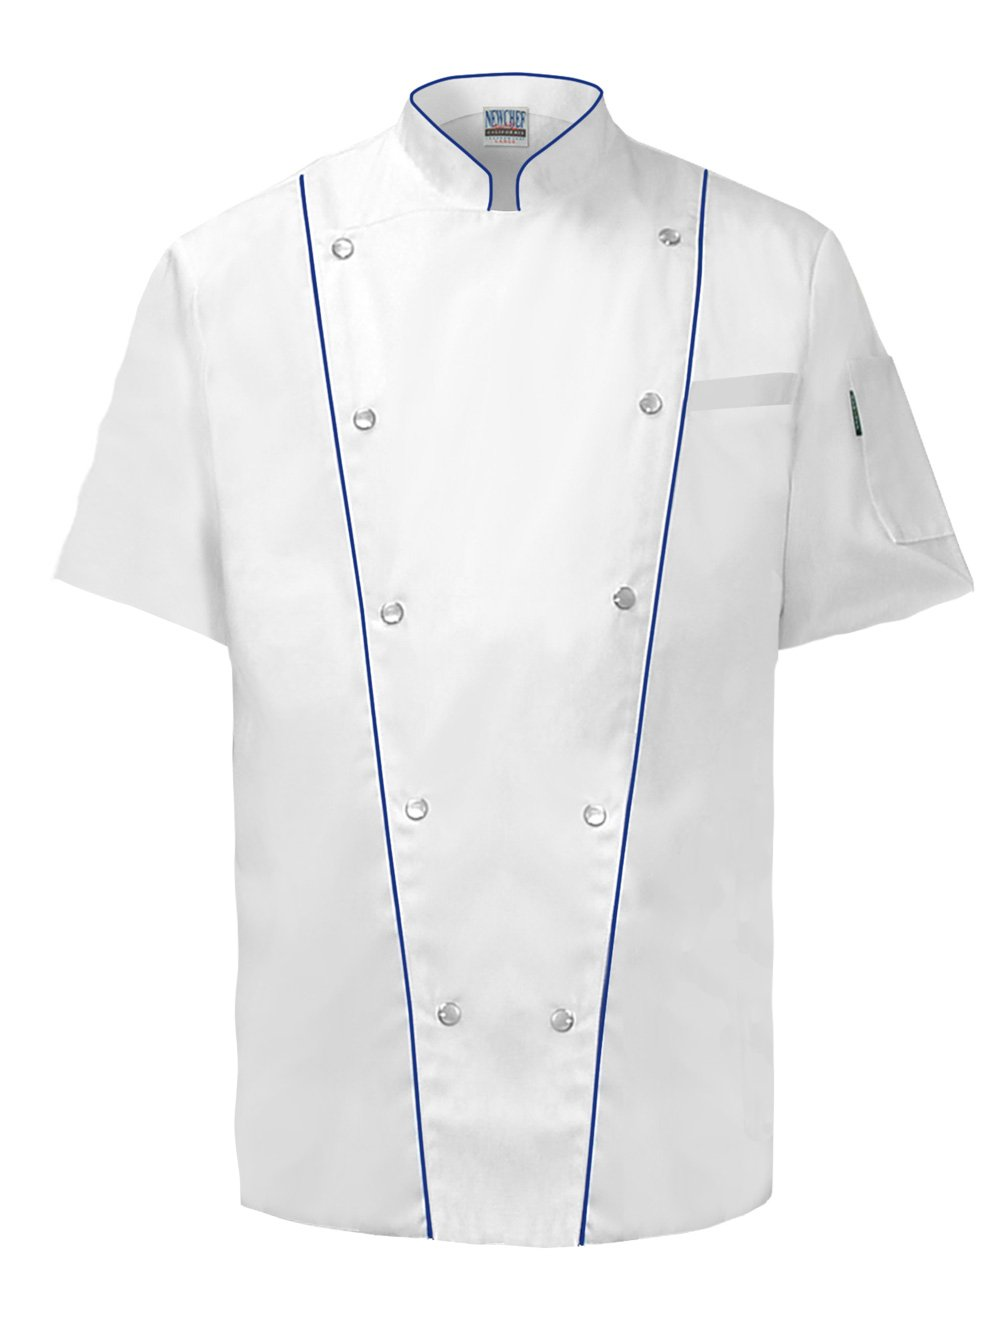 Newchef Fashion Executive White Chef Coat Male Short Sleeves 2XL White by Newchef Fashion